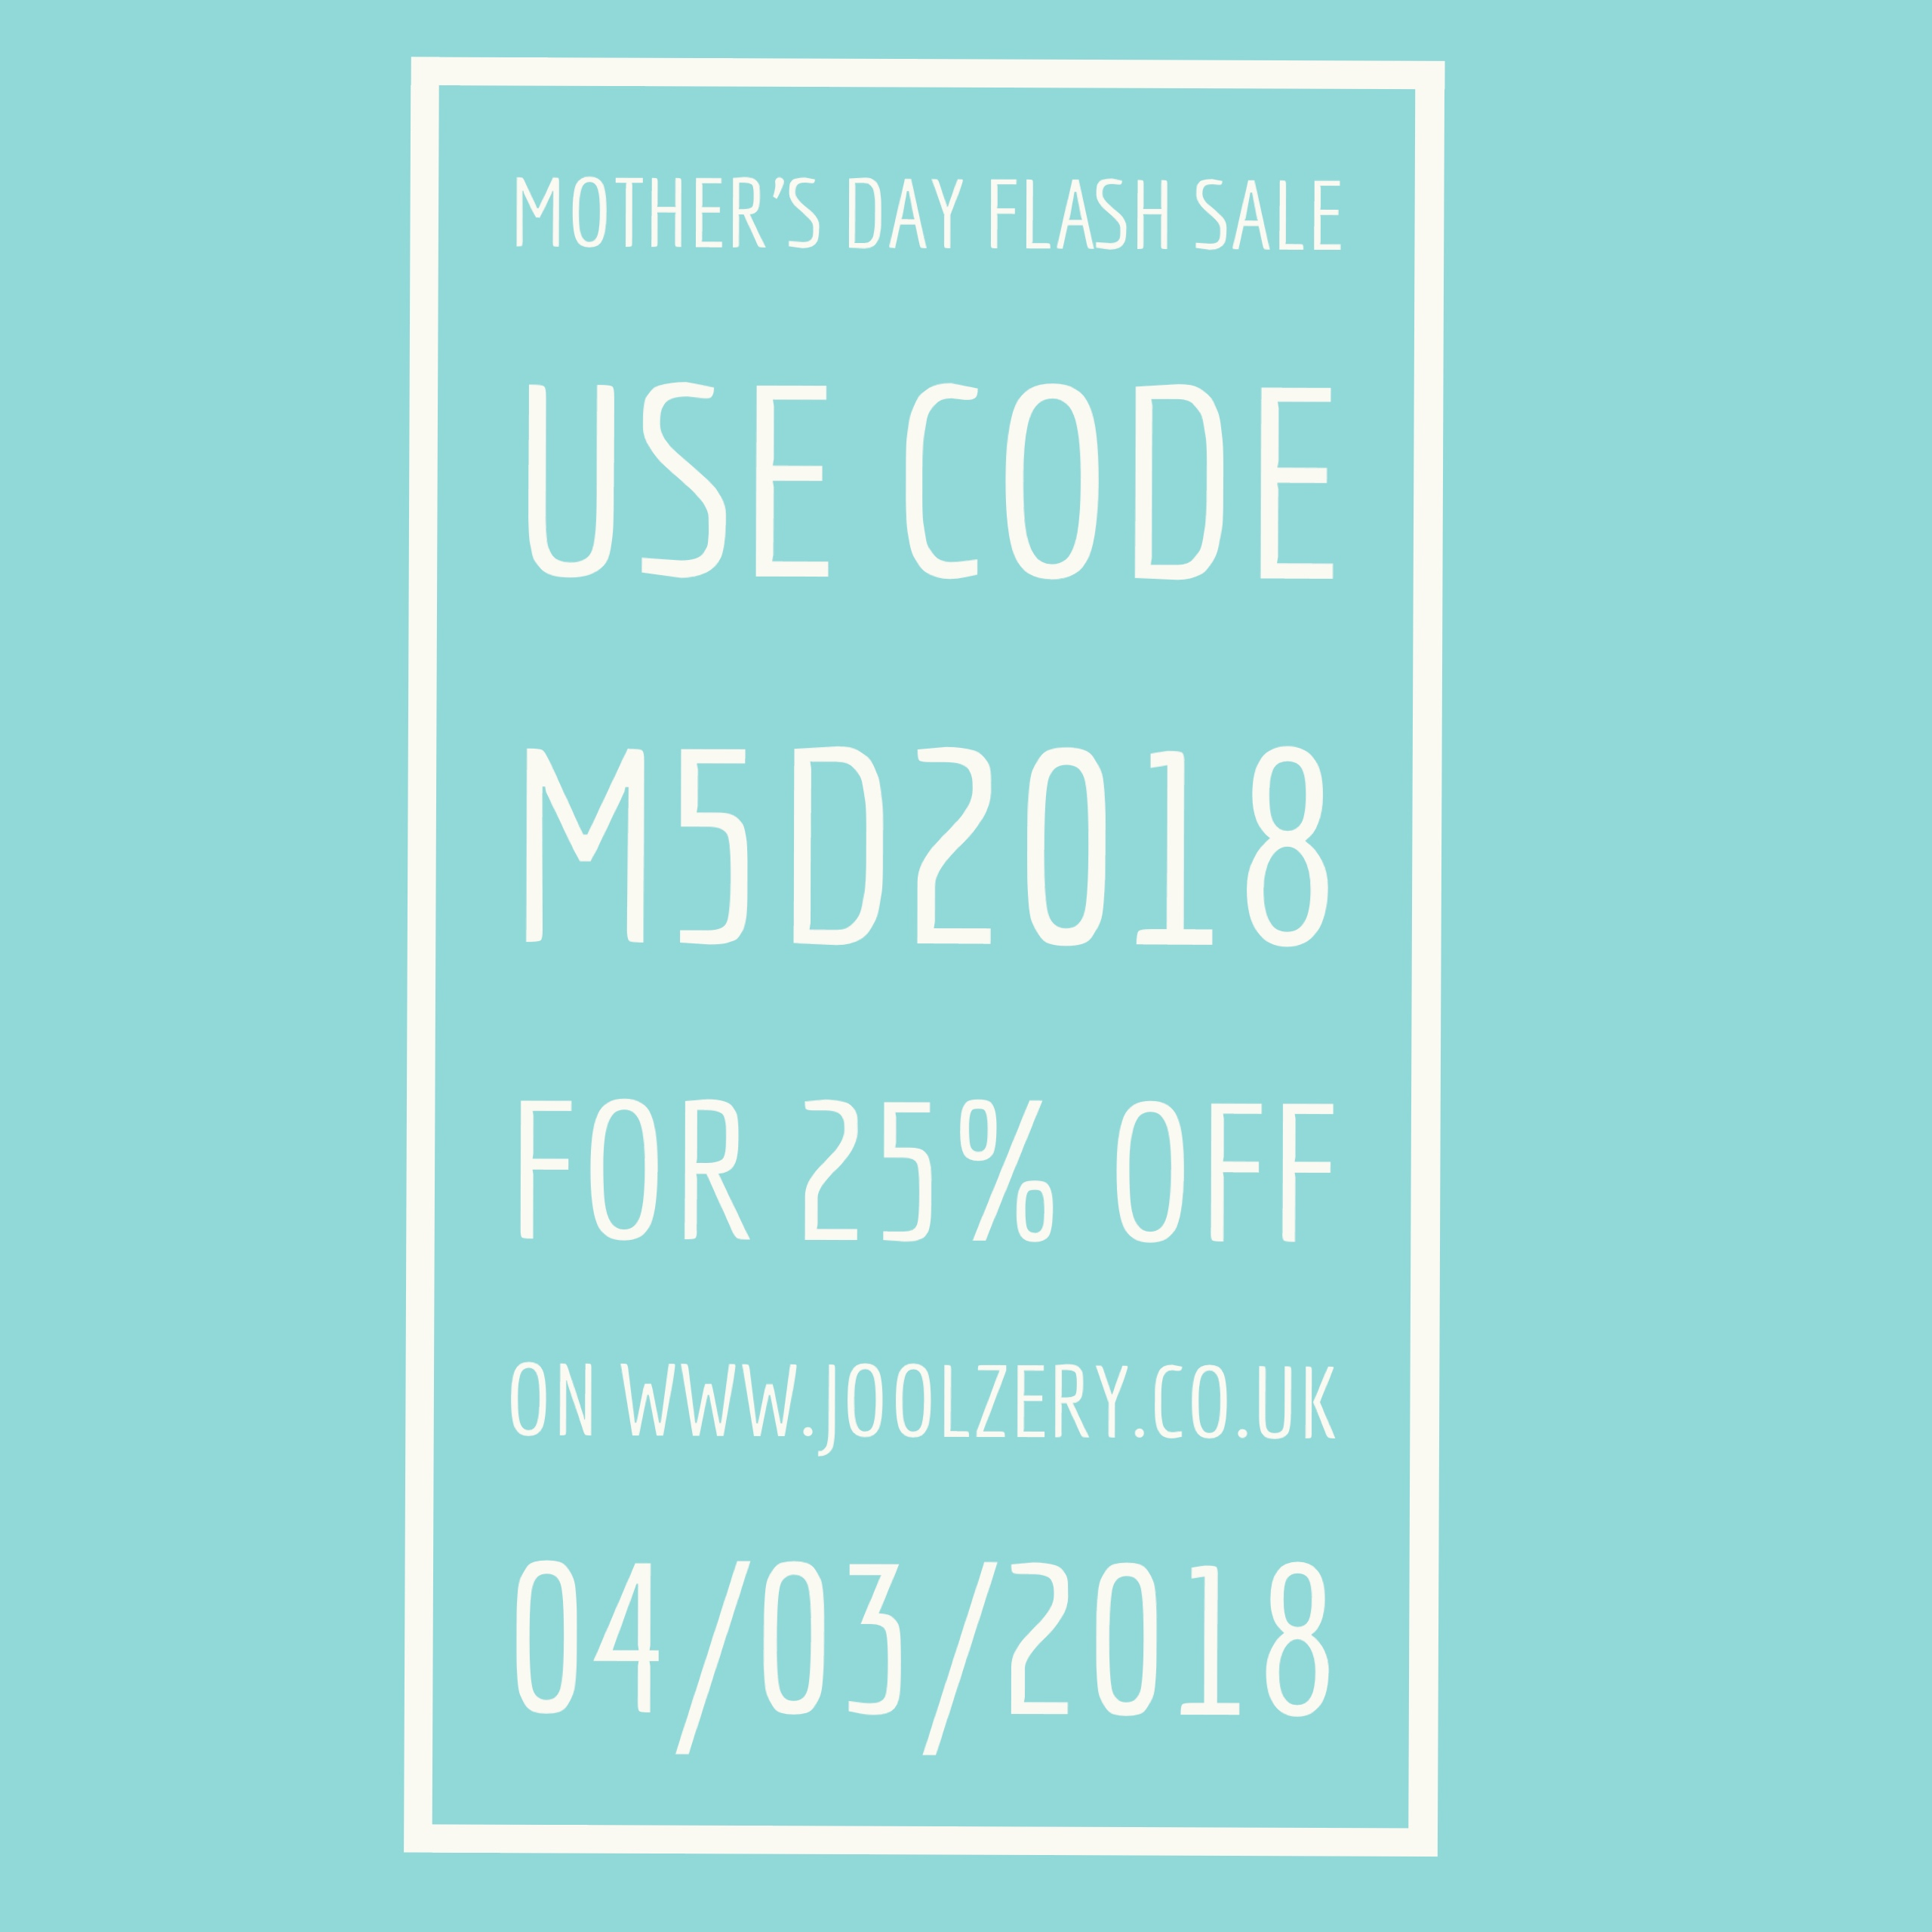 Joolzery Mothers Days Flash Sale Code